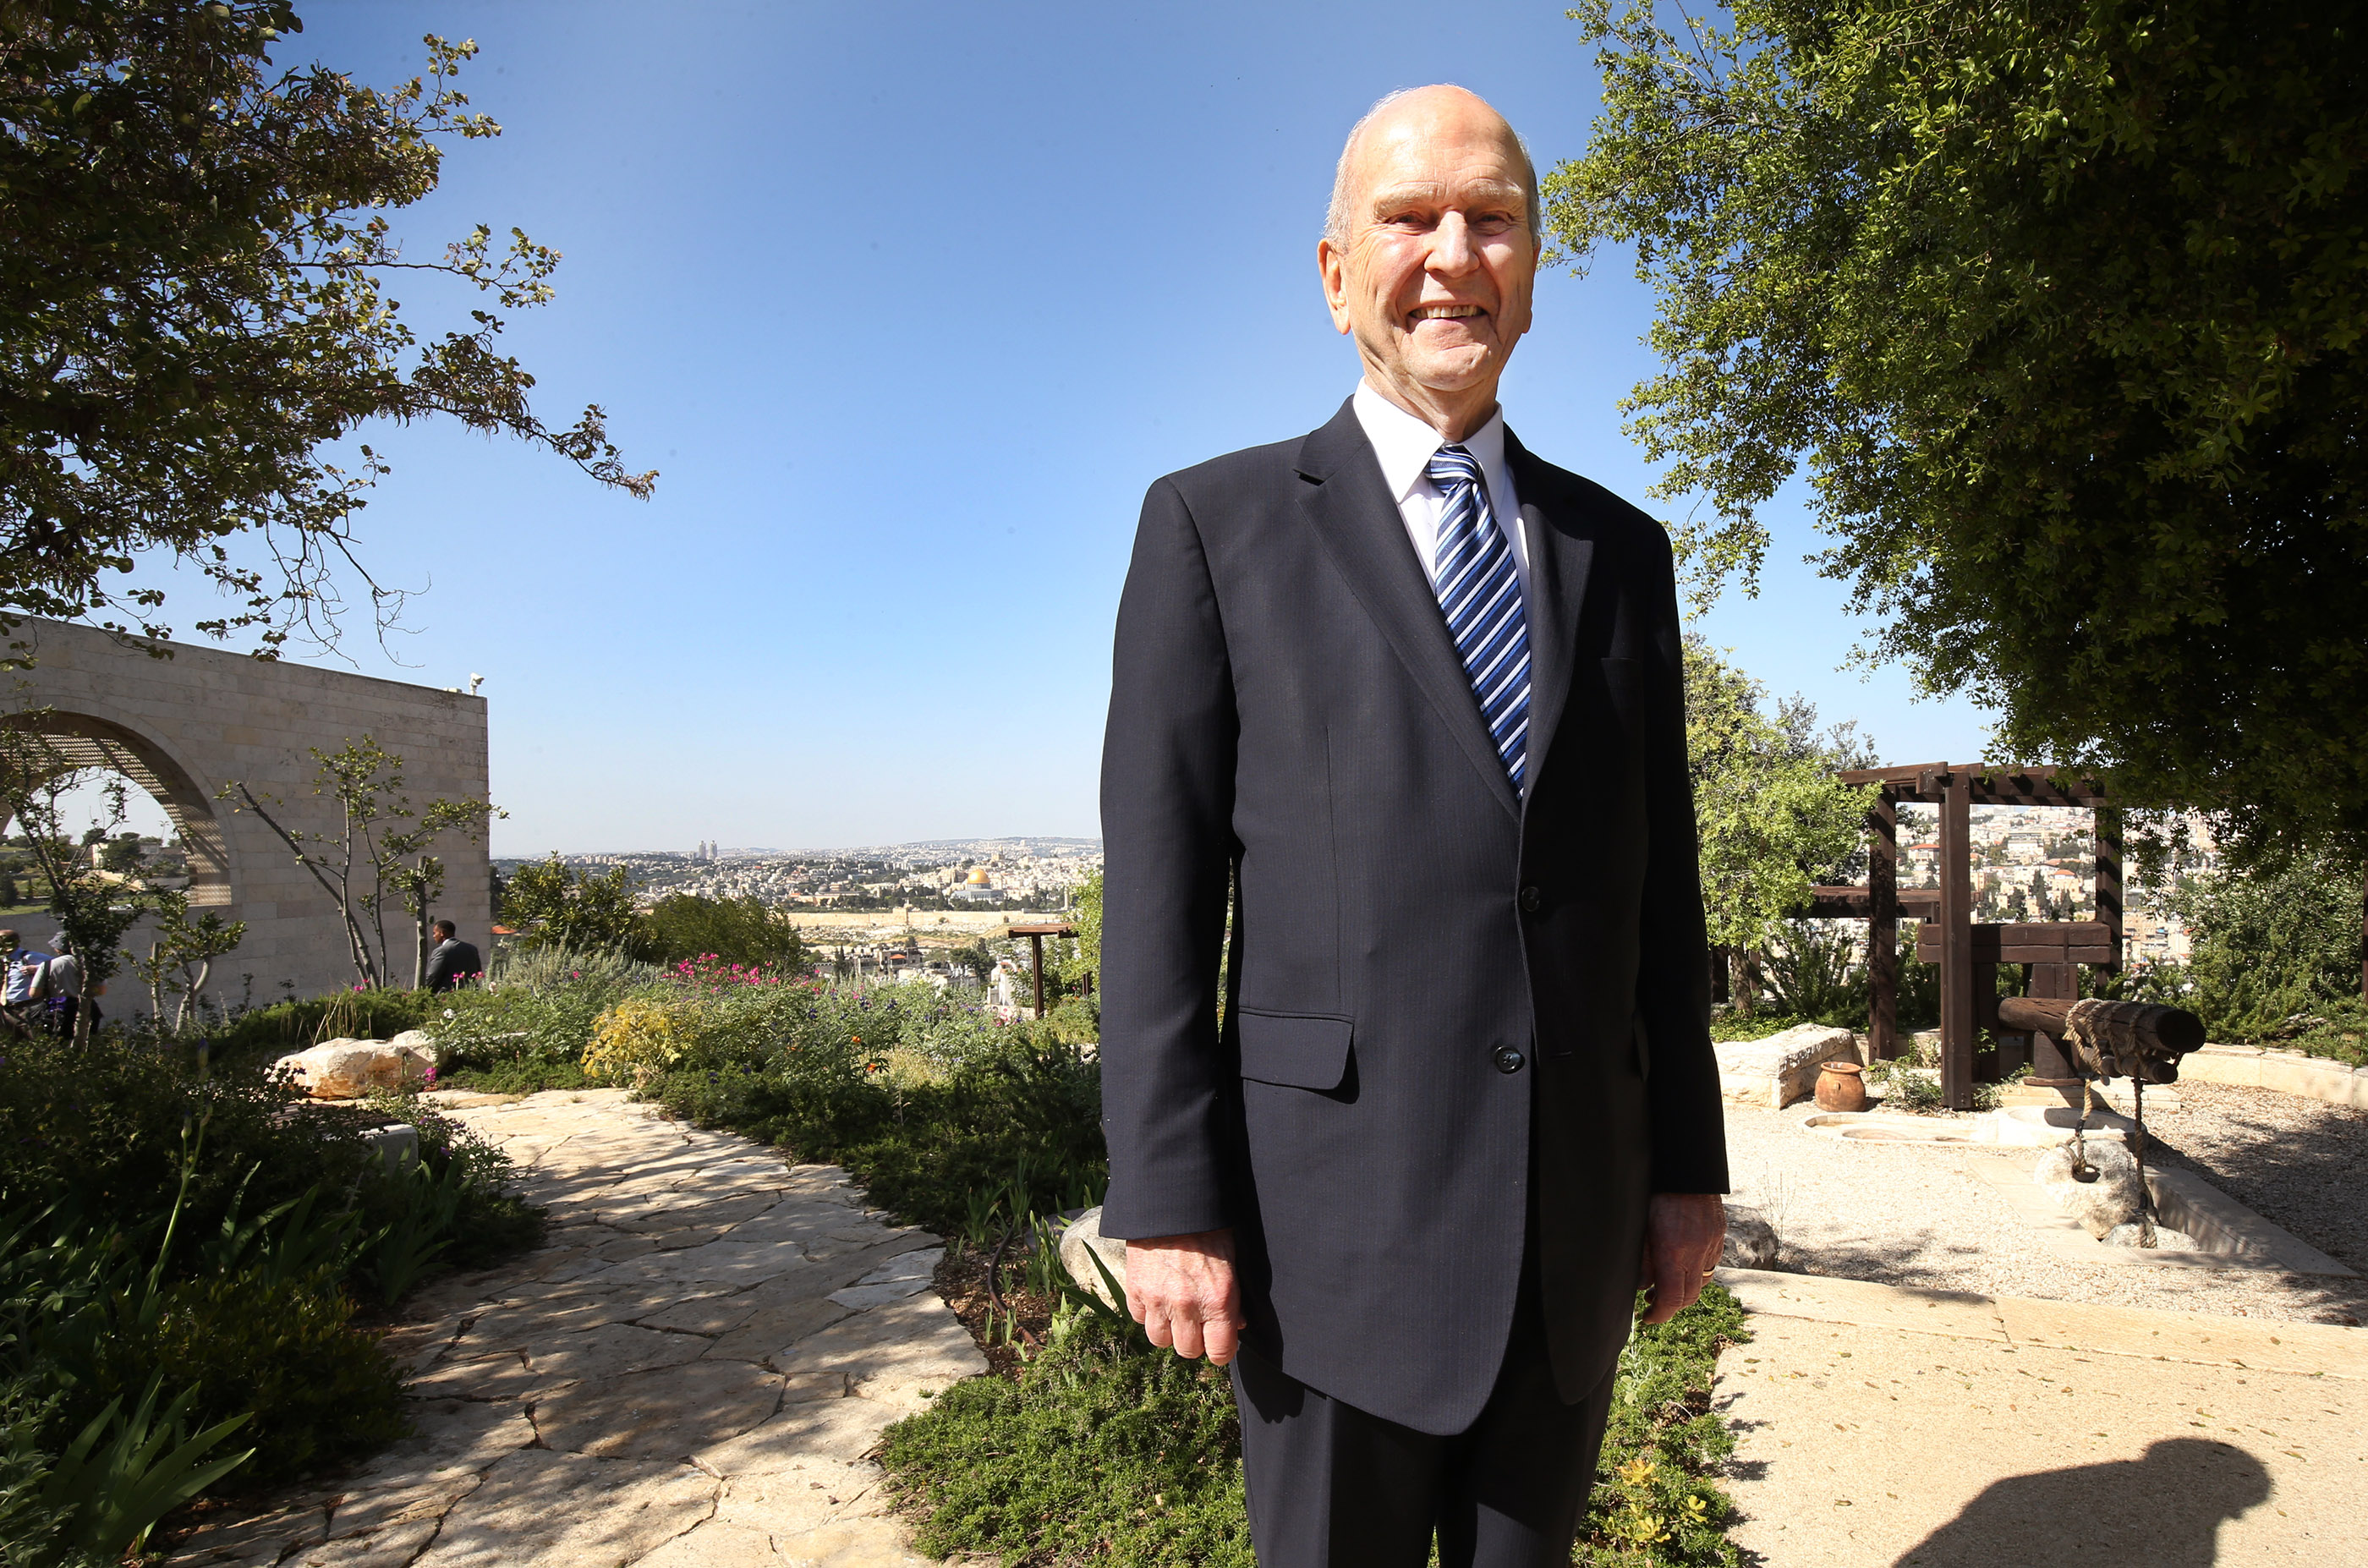 President Russell M. Nelson, president of The Church of Jesus Christ of Latter-day Saints, smiles at the BYU Jerusalem Center in Jerusalem on Saturday, April 14, 2018. President Nelson is on a global tour of eight countries.